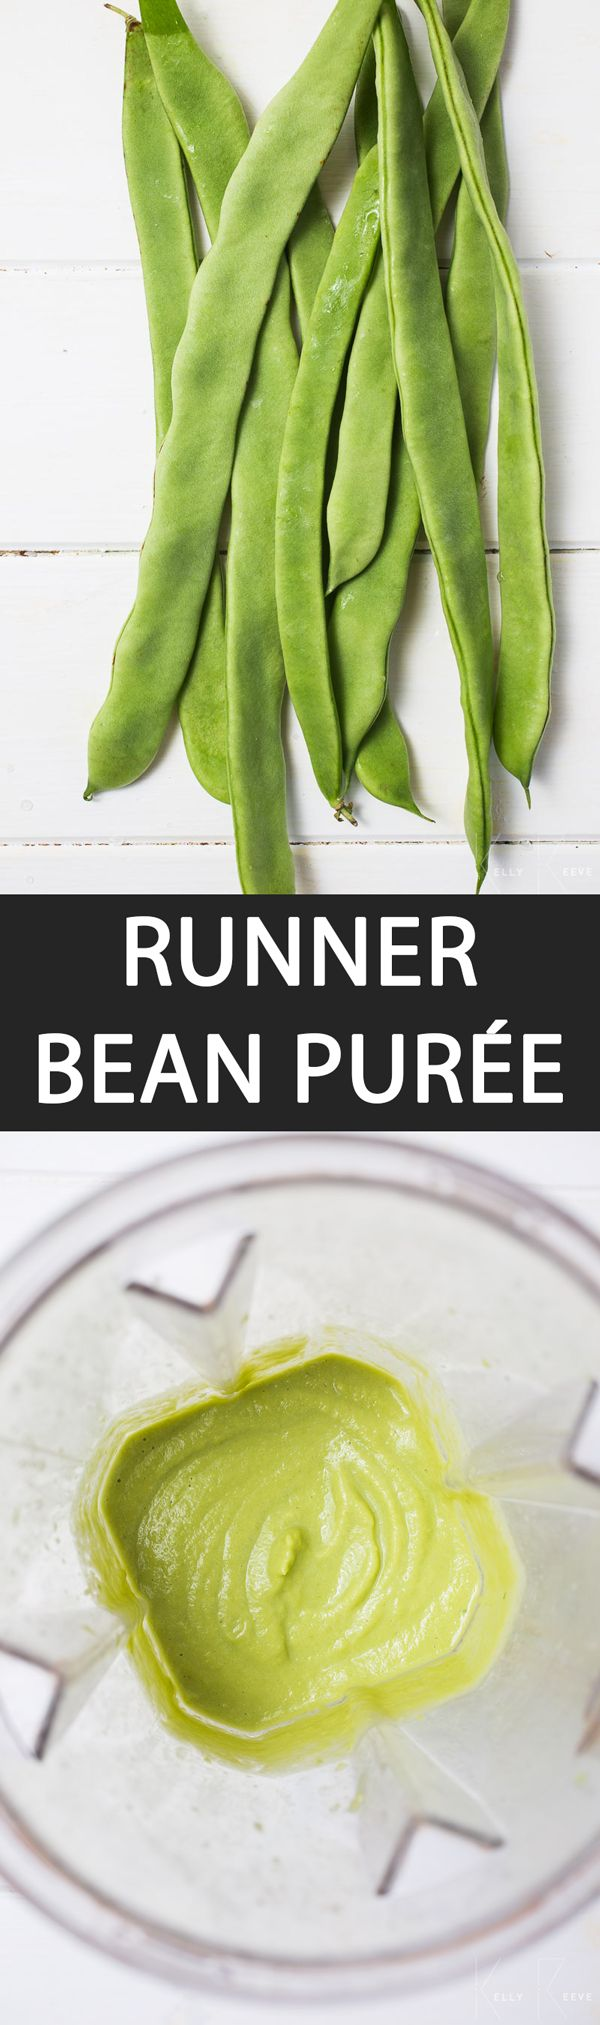 Runner Bean Puree - {NEW RECIPE} Runner #bean #purée is a low-carb alternative to the traditional potato #mash. Very versatile, it can be paired with roasted vegetables, various types of meats and fish. It can easily be jazzed up with your favourite herbs and spices. Make it #vegan with vegetable oil.